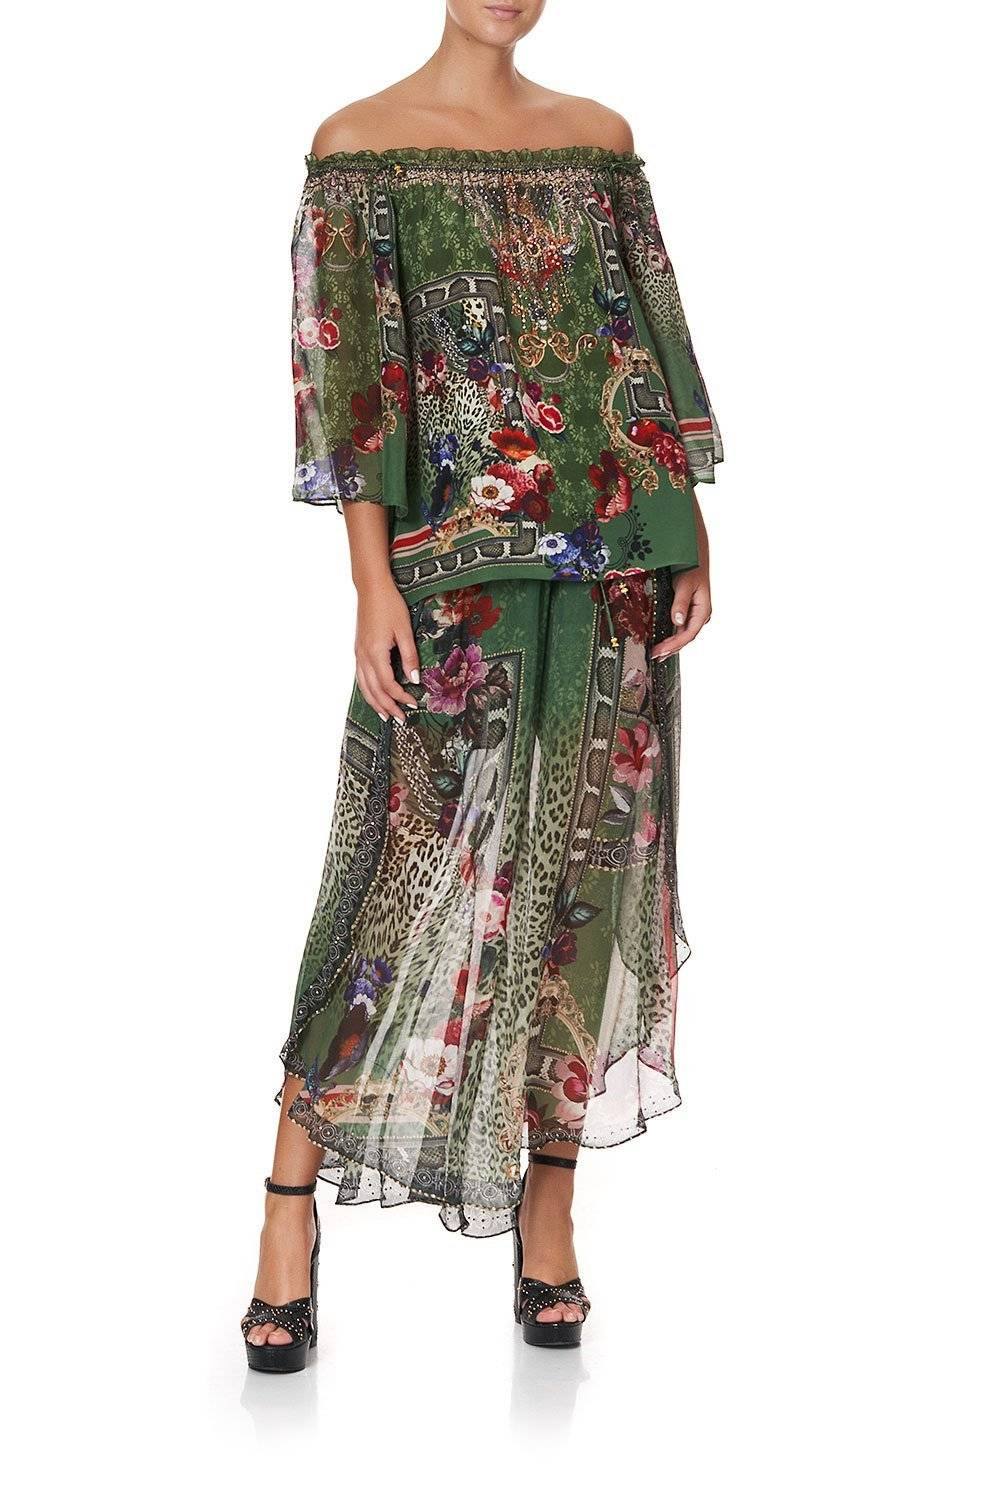 CAMILLA GREEN AND FLORAL OFF SHOULDER BLOUSE